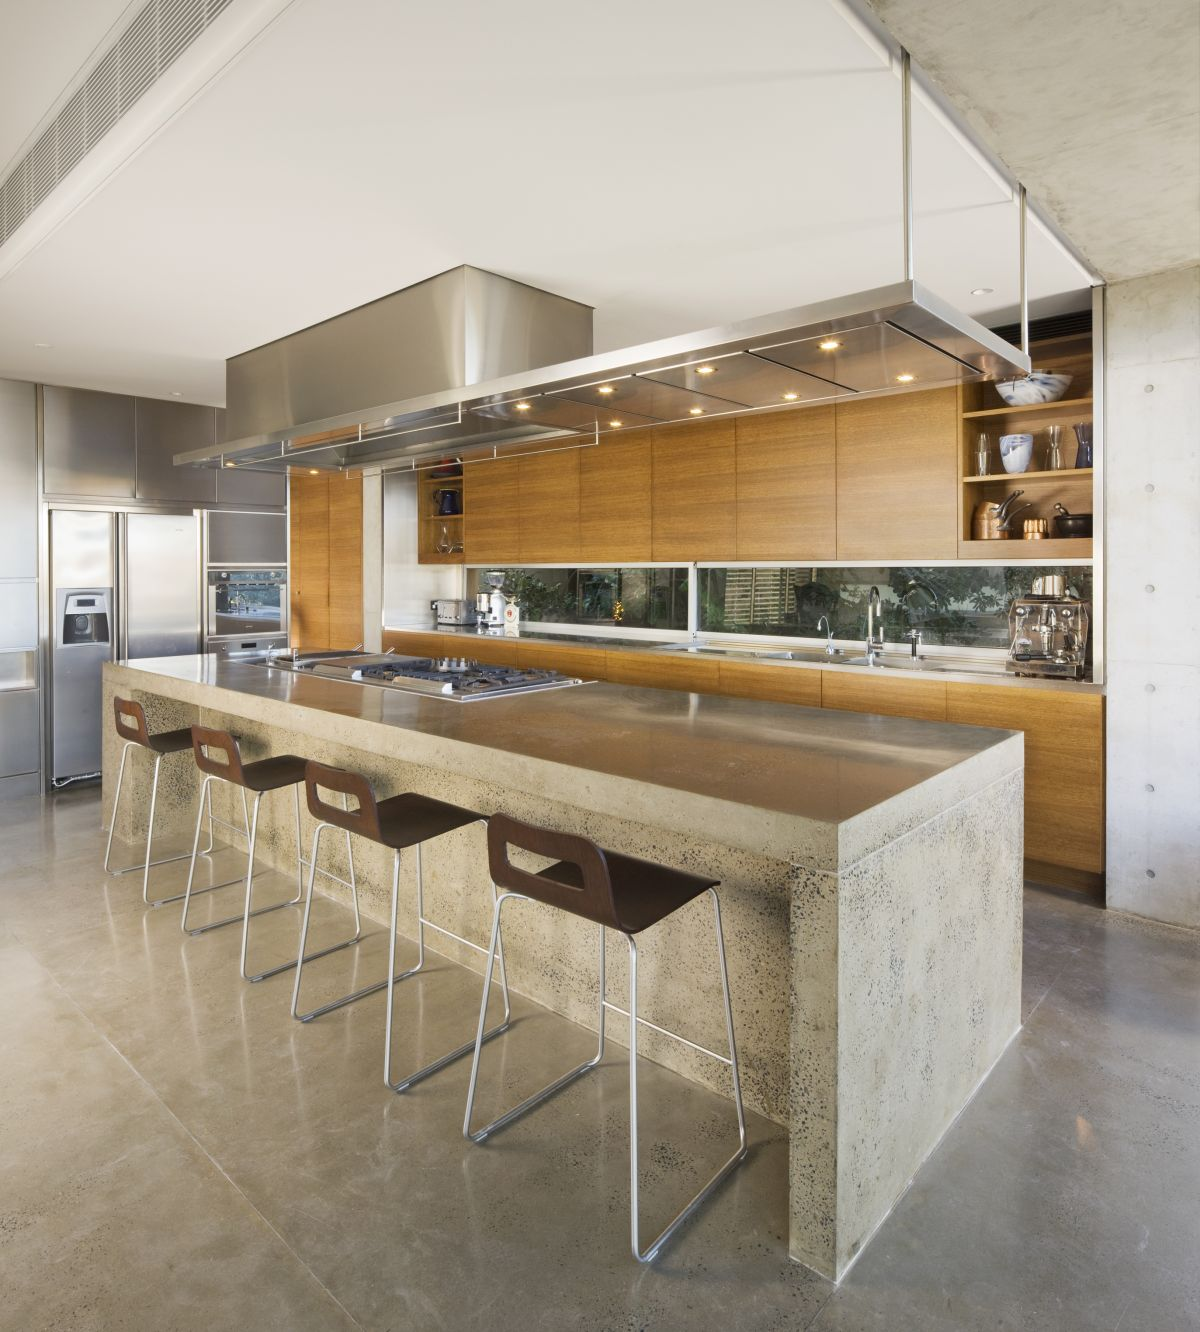 design house kitchens. Contemporary Kitchens Simply Inspiring 10 Wonderful Kitchen Design Lines That Will